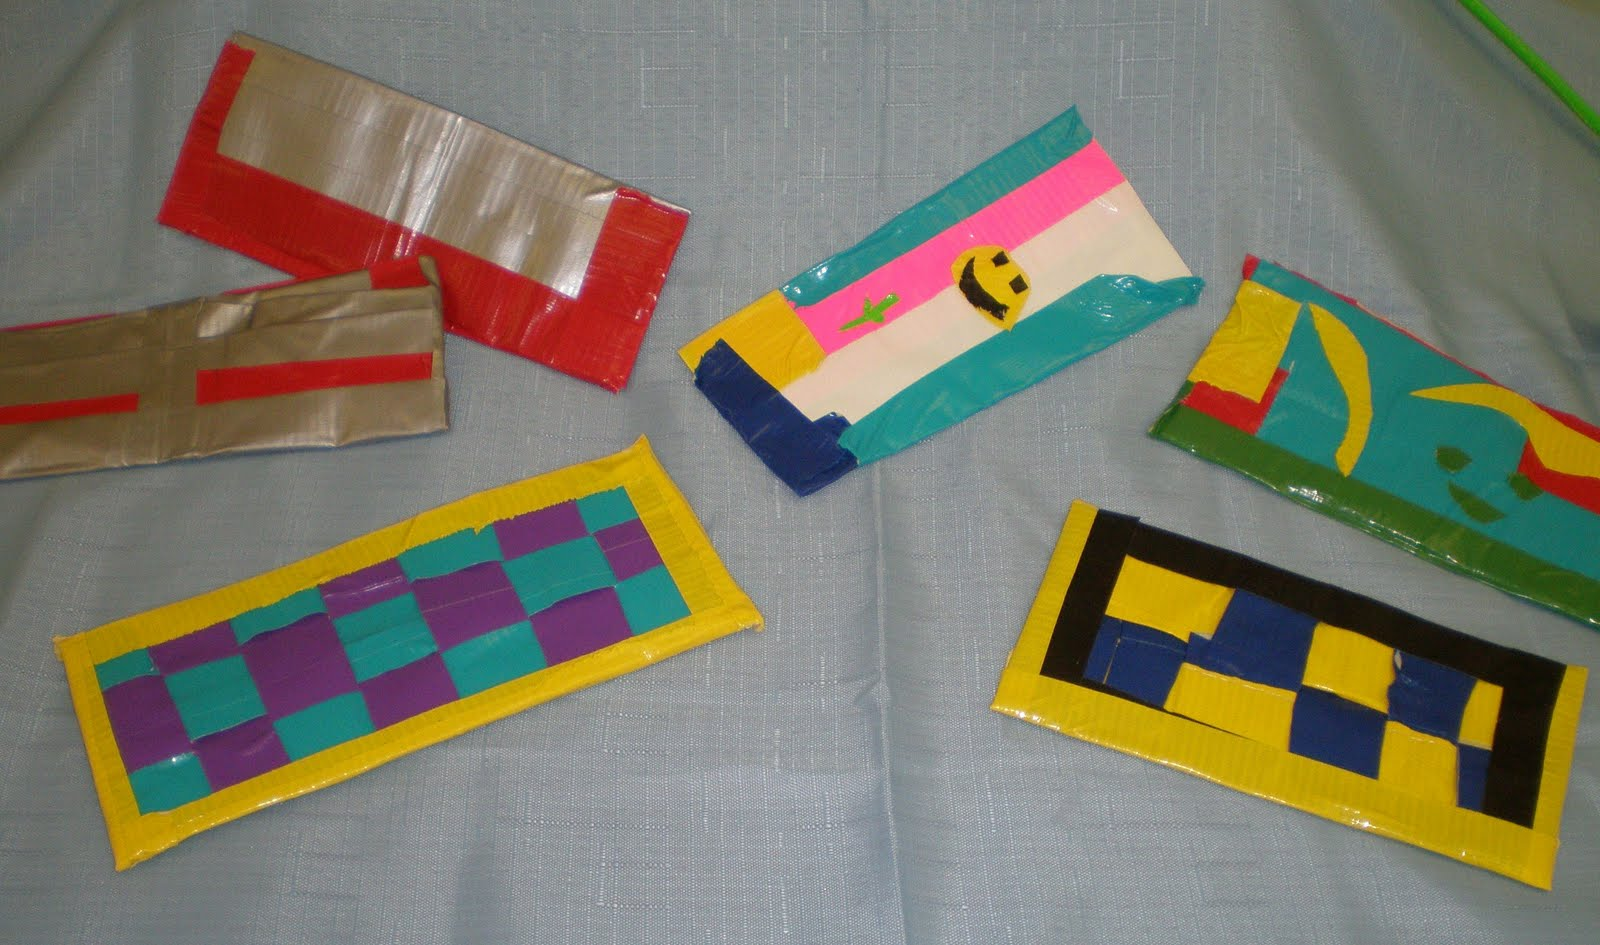 Diary of a Homeschool Mom: Fun Duct Tape Creations |Duct Tape Creations